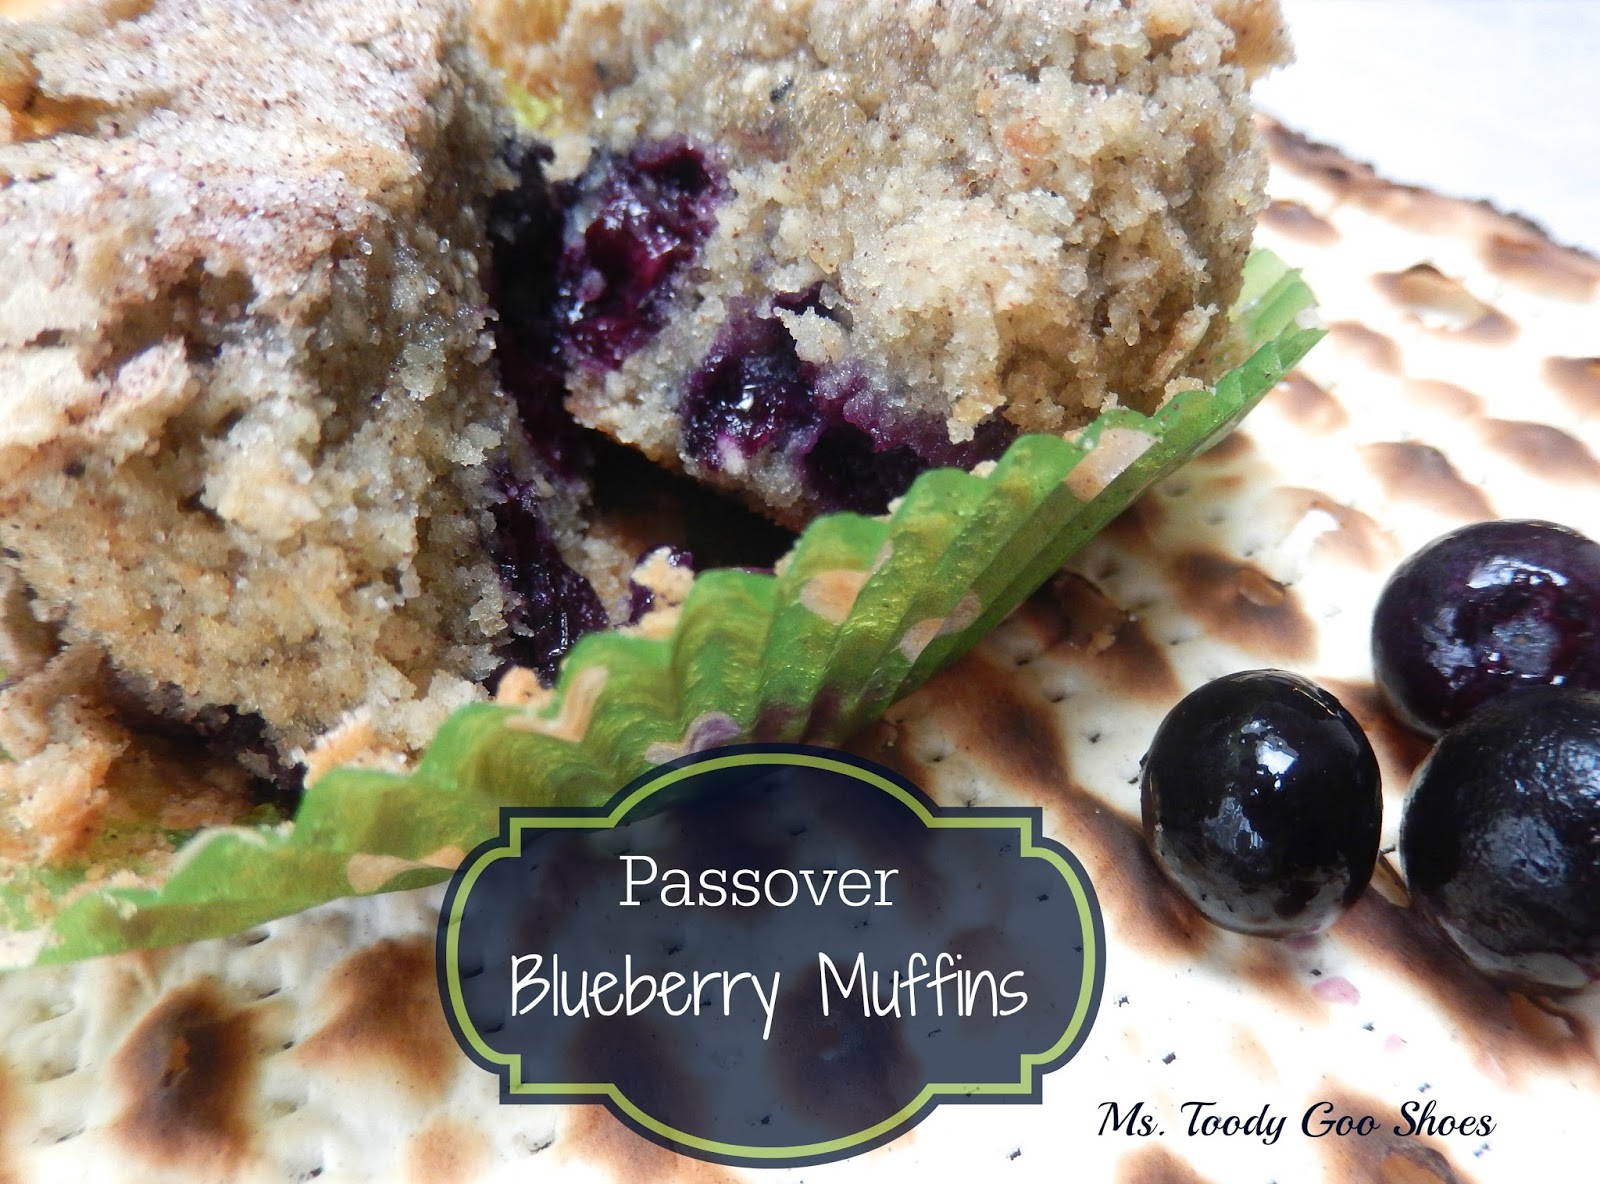 Passover Blueberry Muffins  --- Ms. Toody Goo Shoes